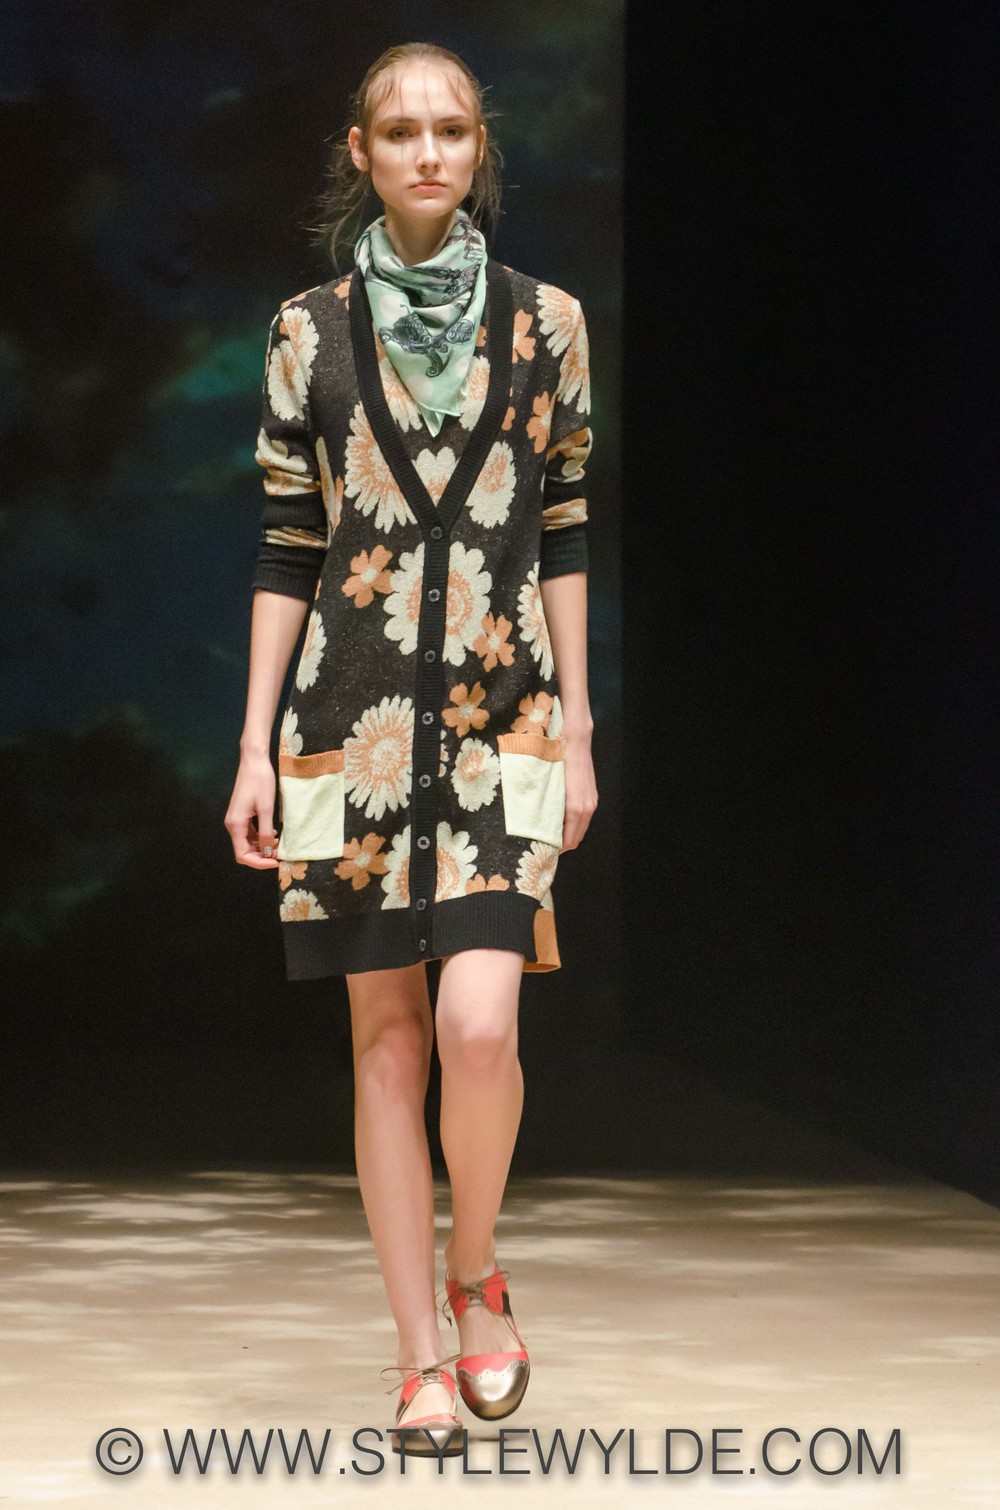 StyleWylde_InProcess_SS2014 (1 of 1)-7.jpg